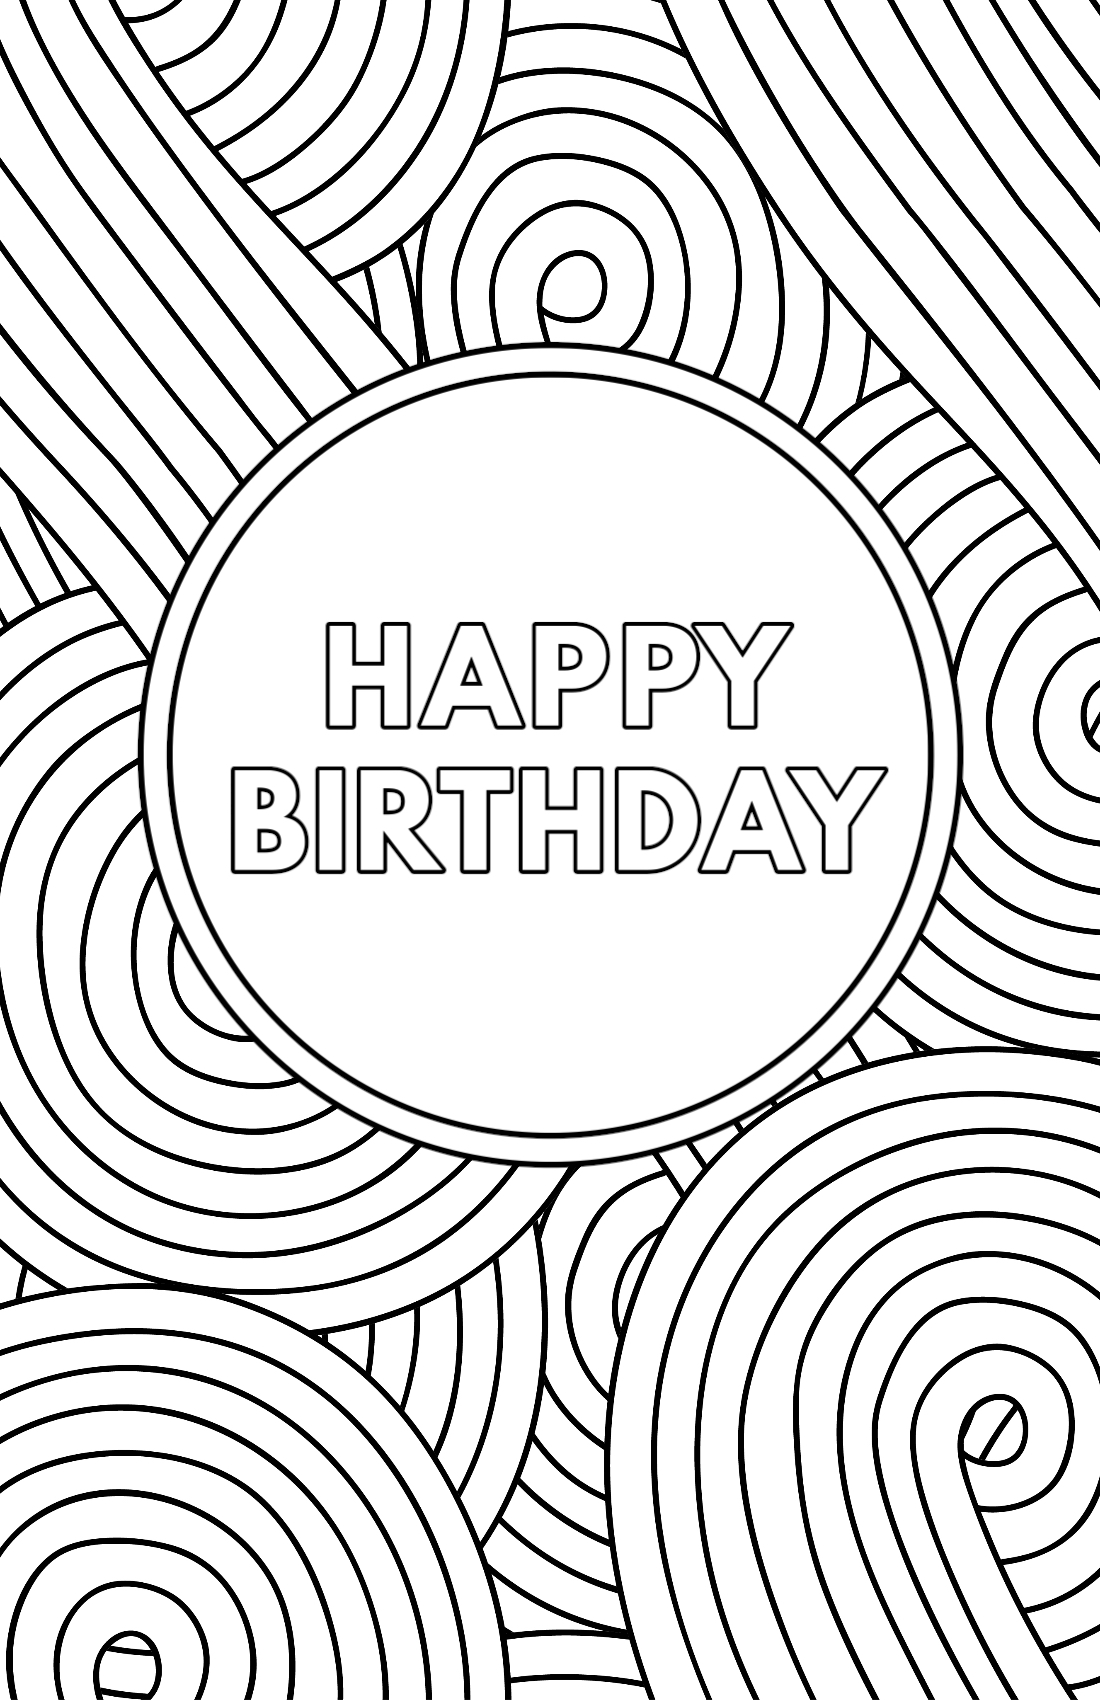 coloring birthday card template happy birthday card template to color cards design templates card coloring template birthday